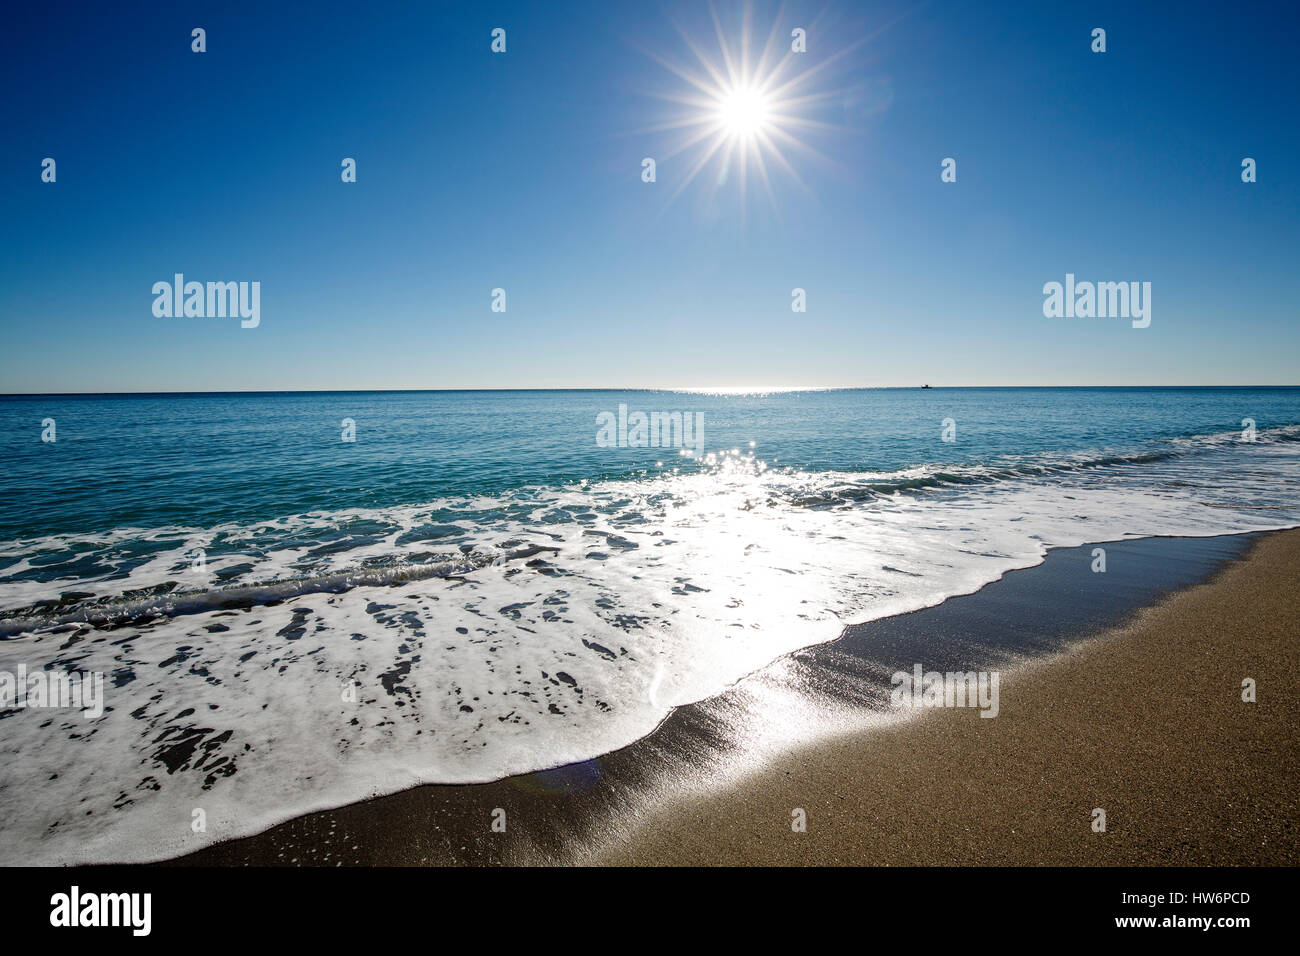 Beach on a sunny day, Marbella. Malaga province. Costa del Sol, Andalusia Southern Spain.Europe - Stock Image